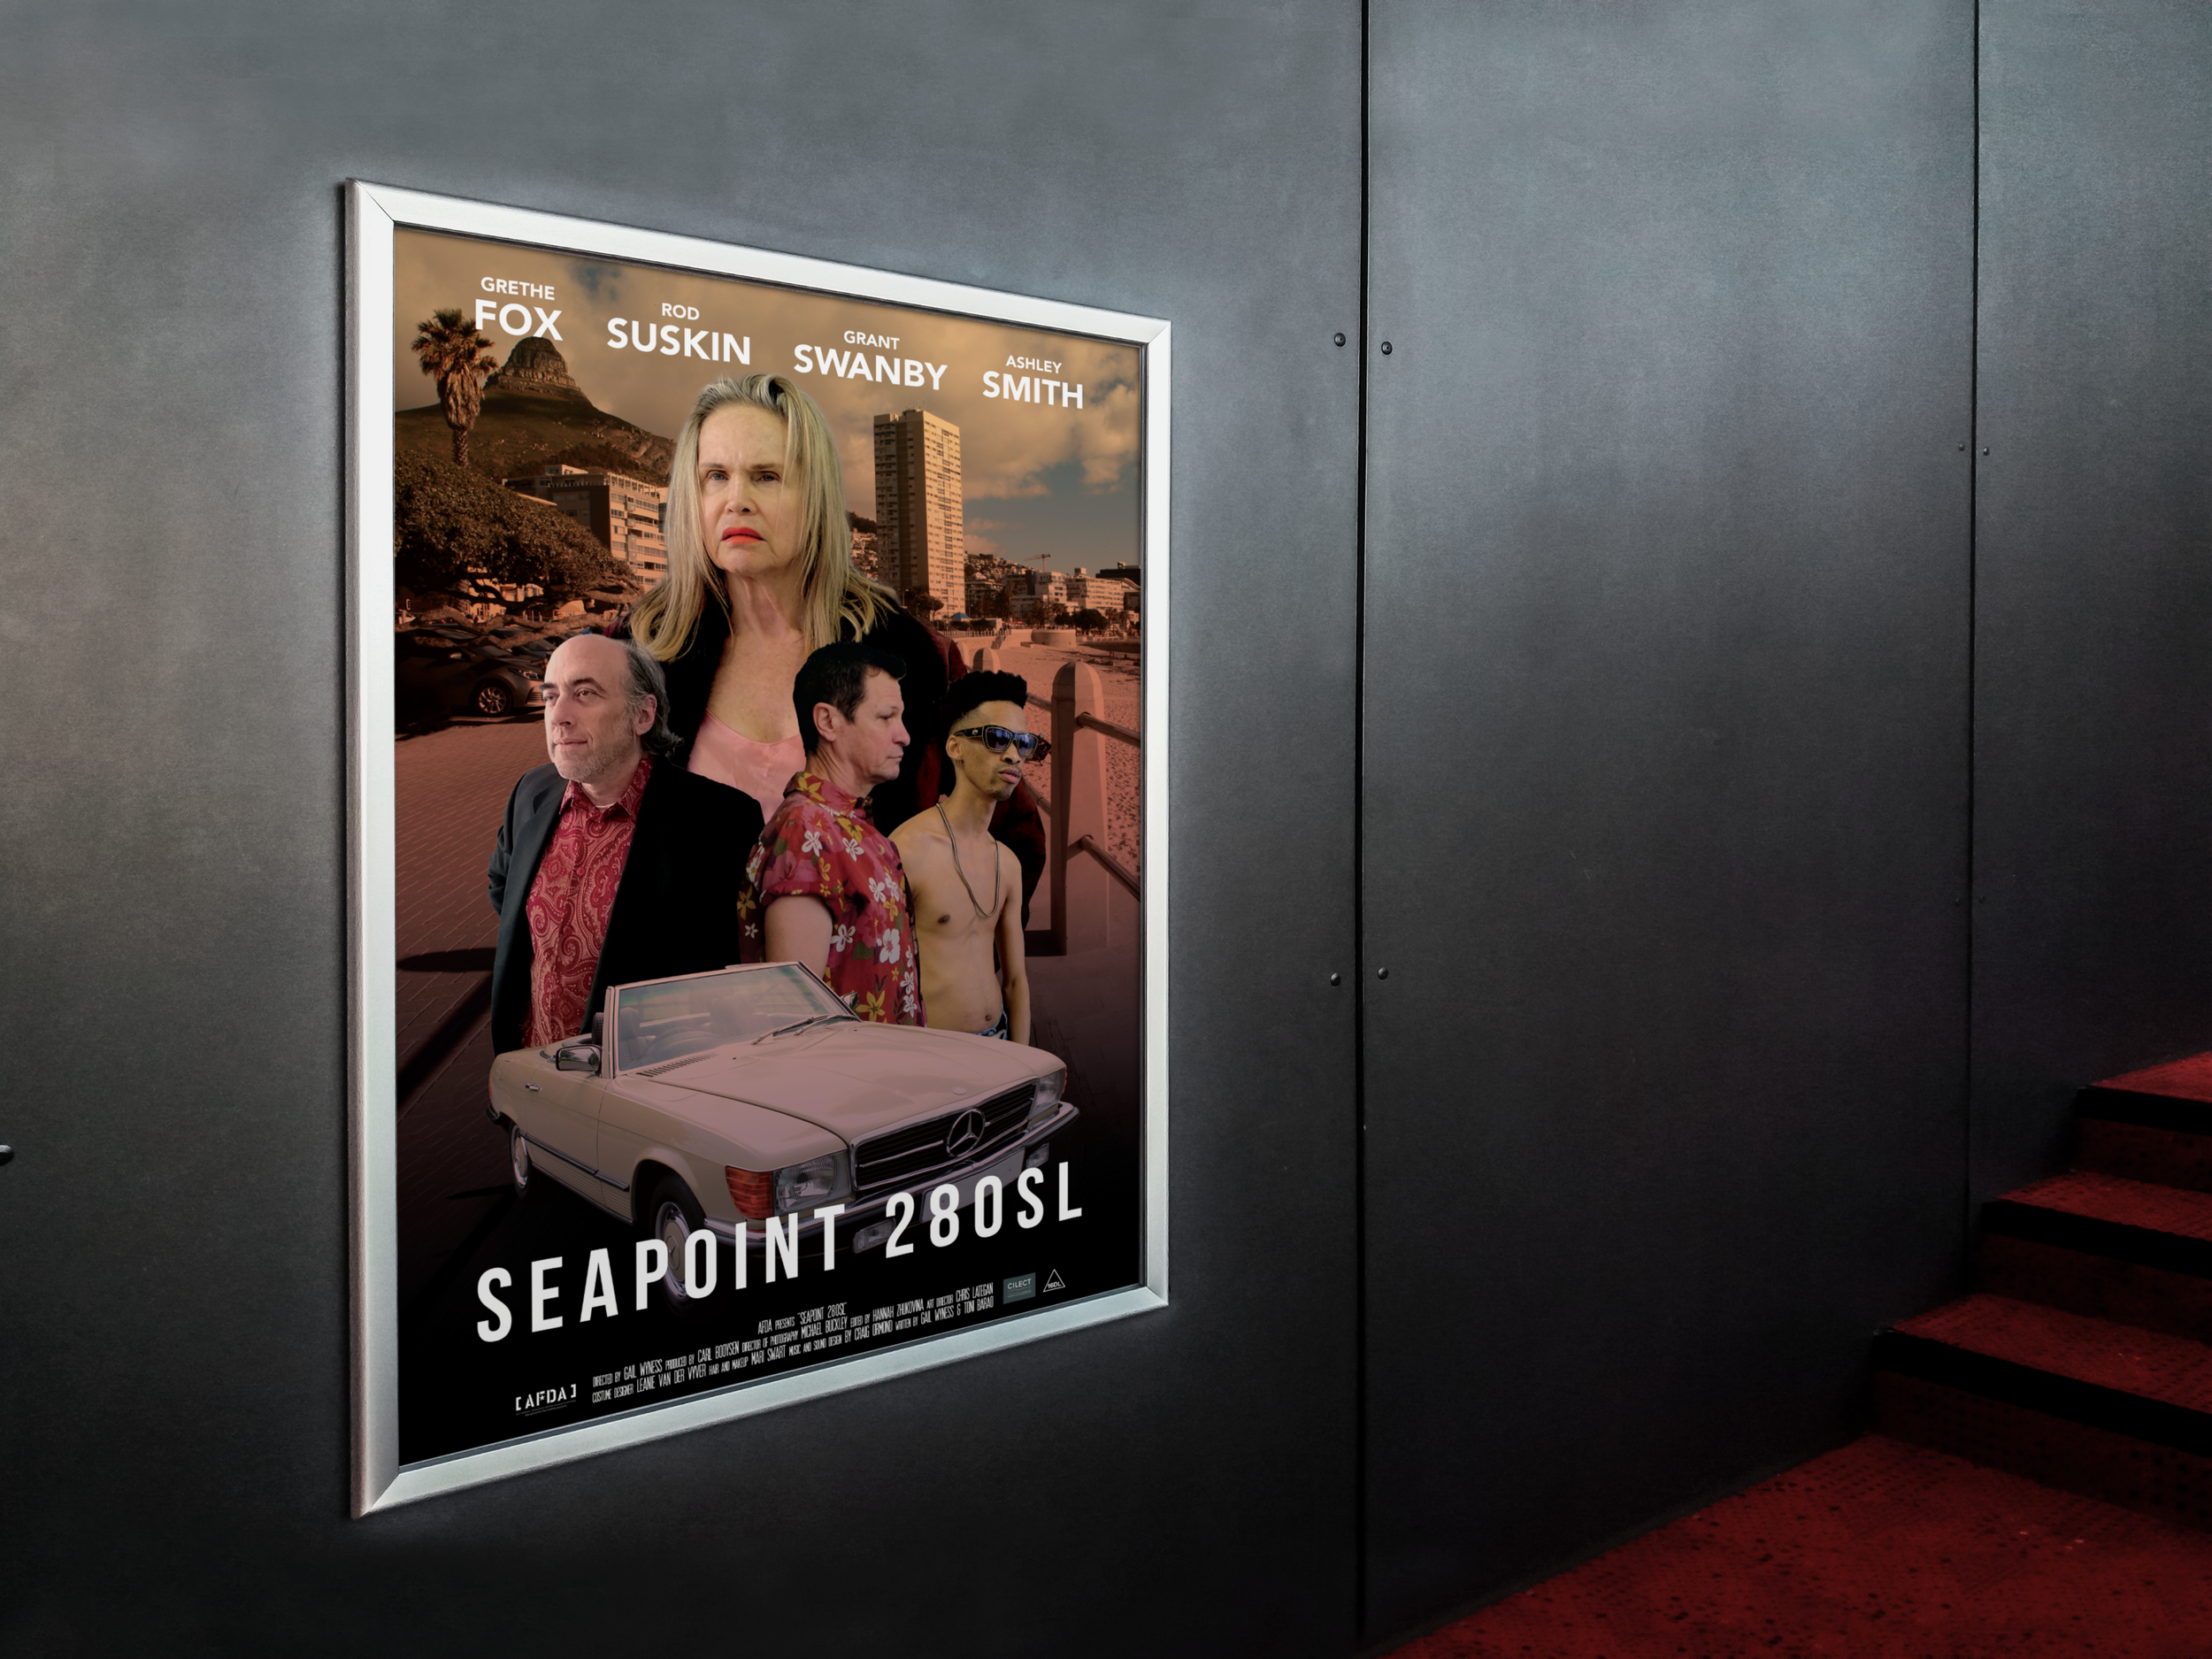 Seapoint-280SL-film-poster.png